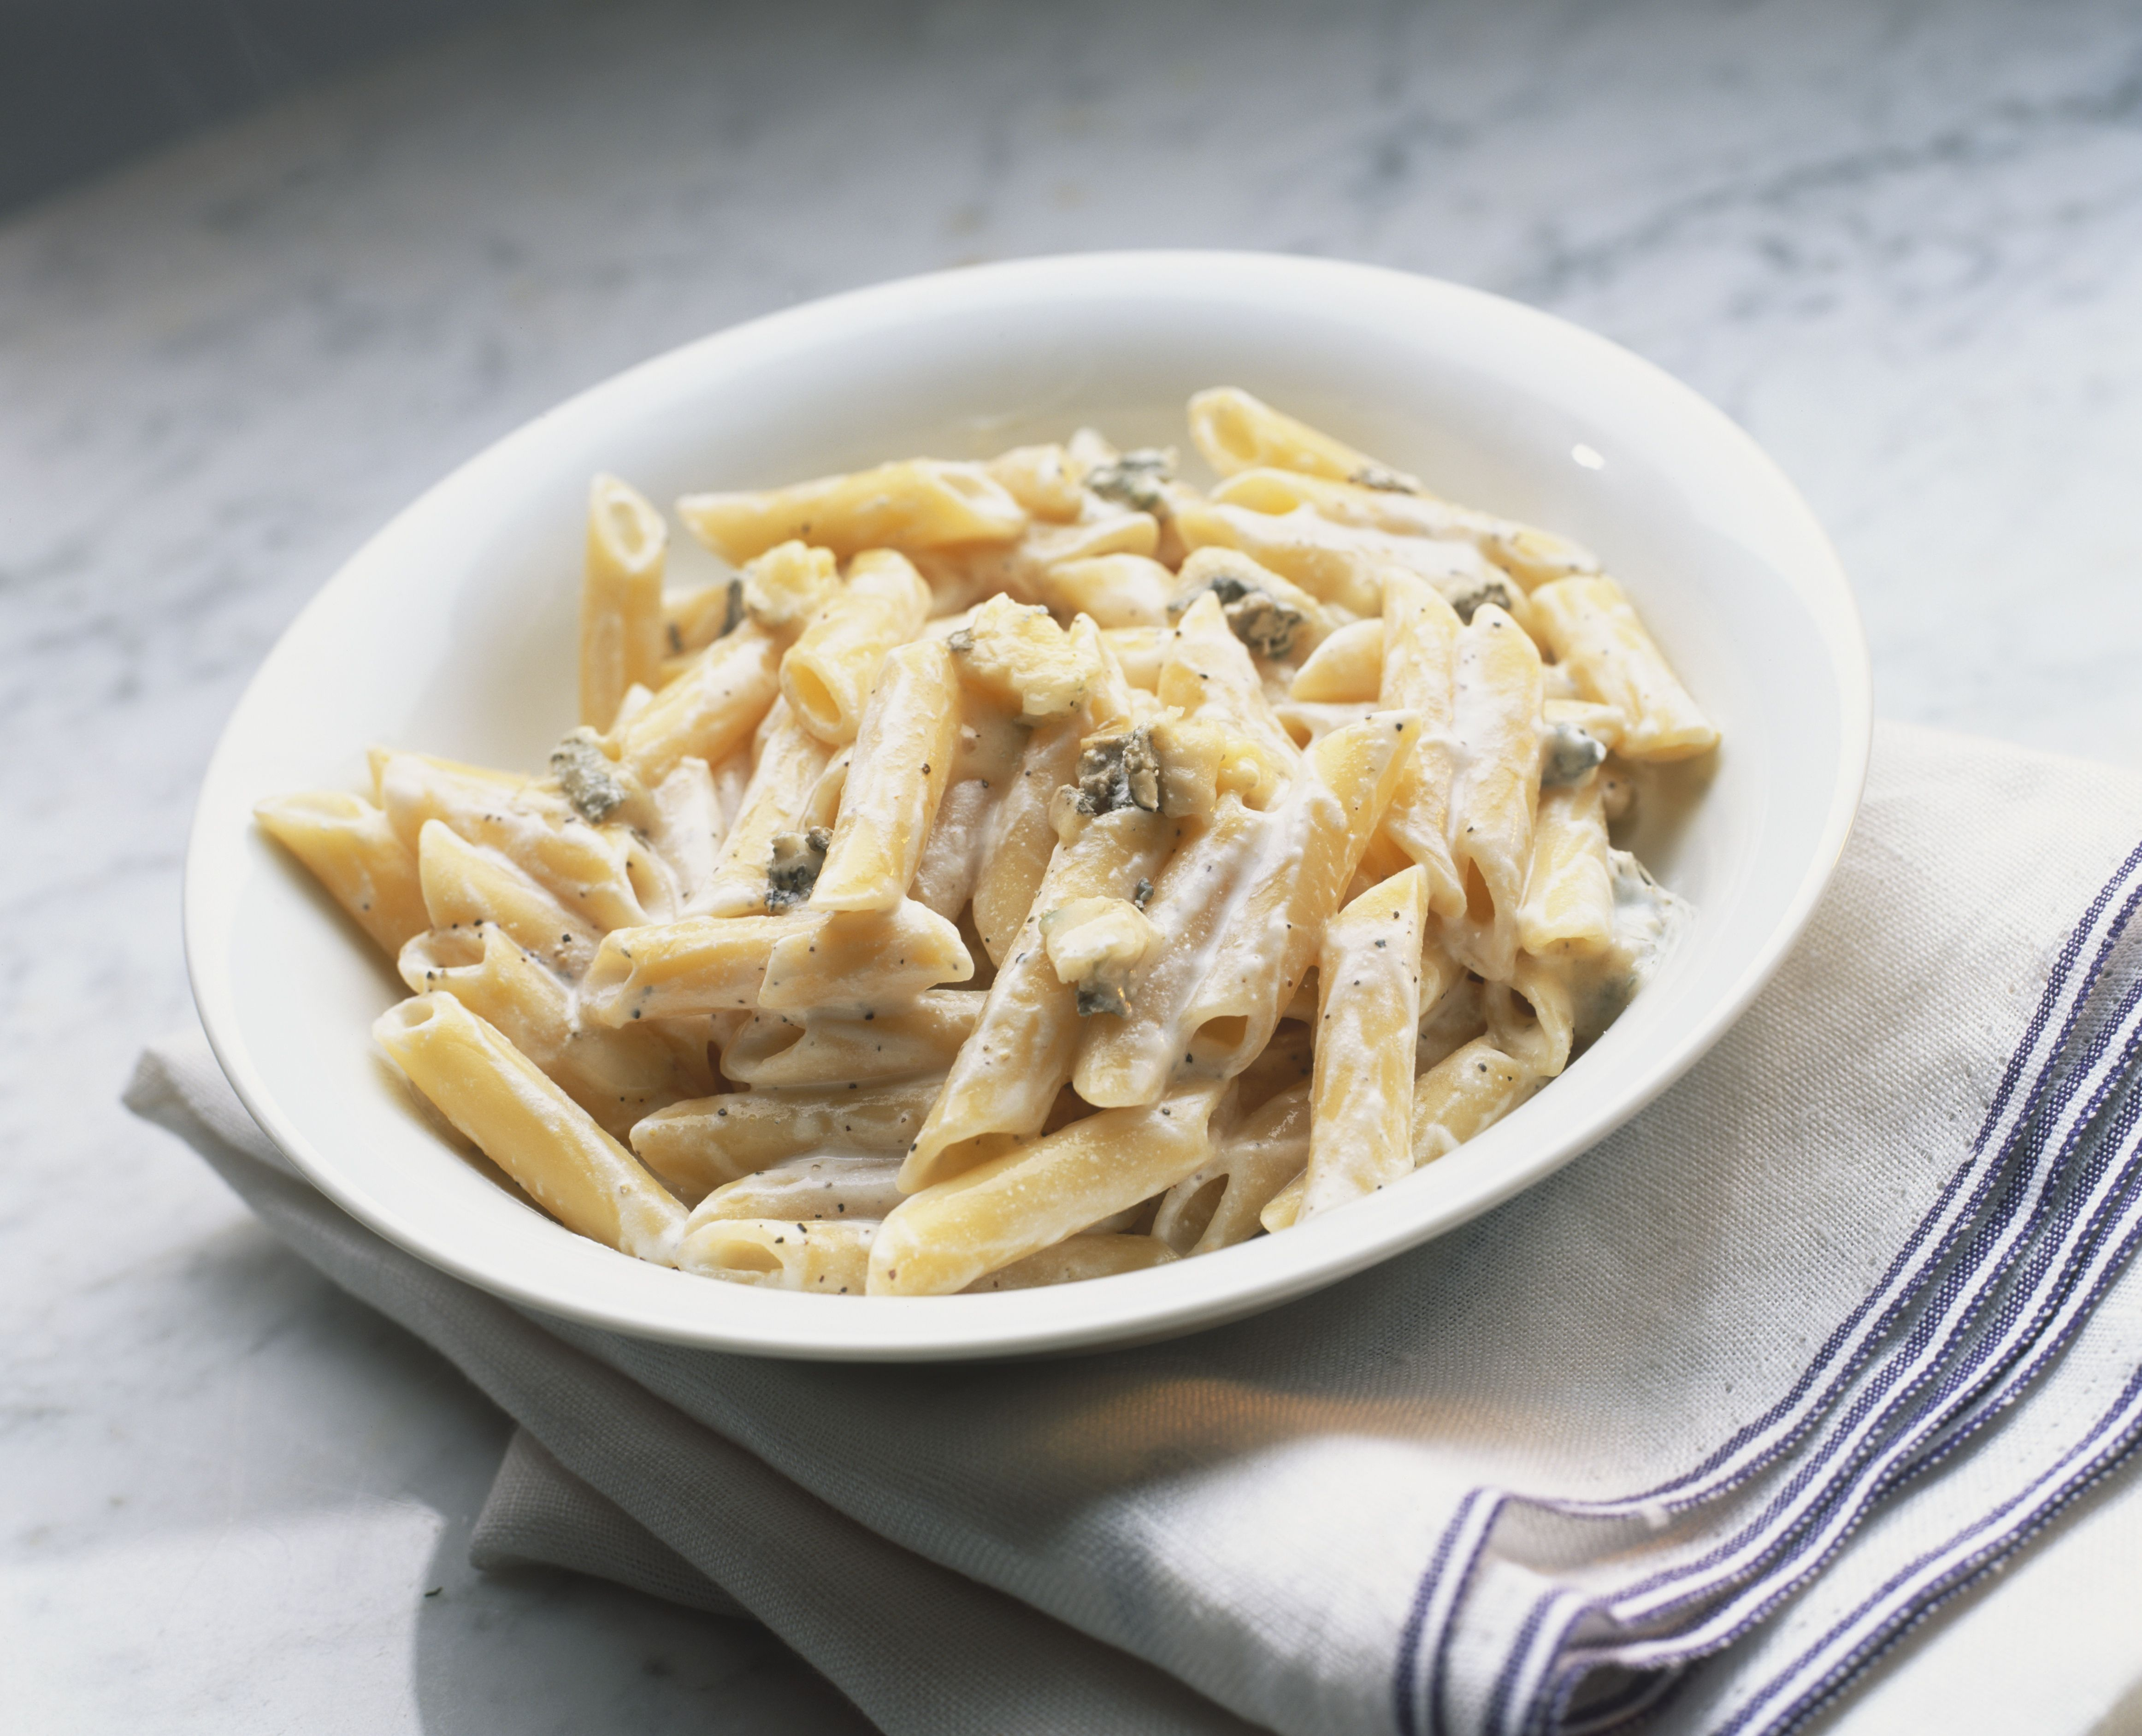 Penne pasta, thick creamy gorgonzola sauce, in white ceramic bowl, tilted angle.